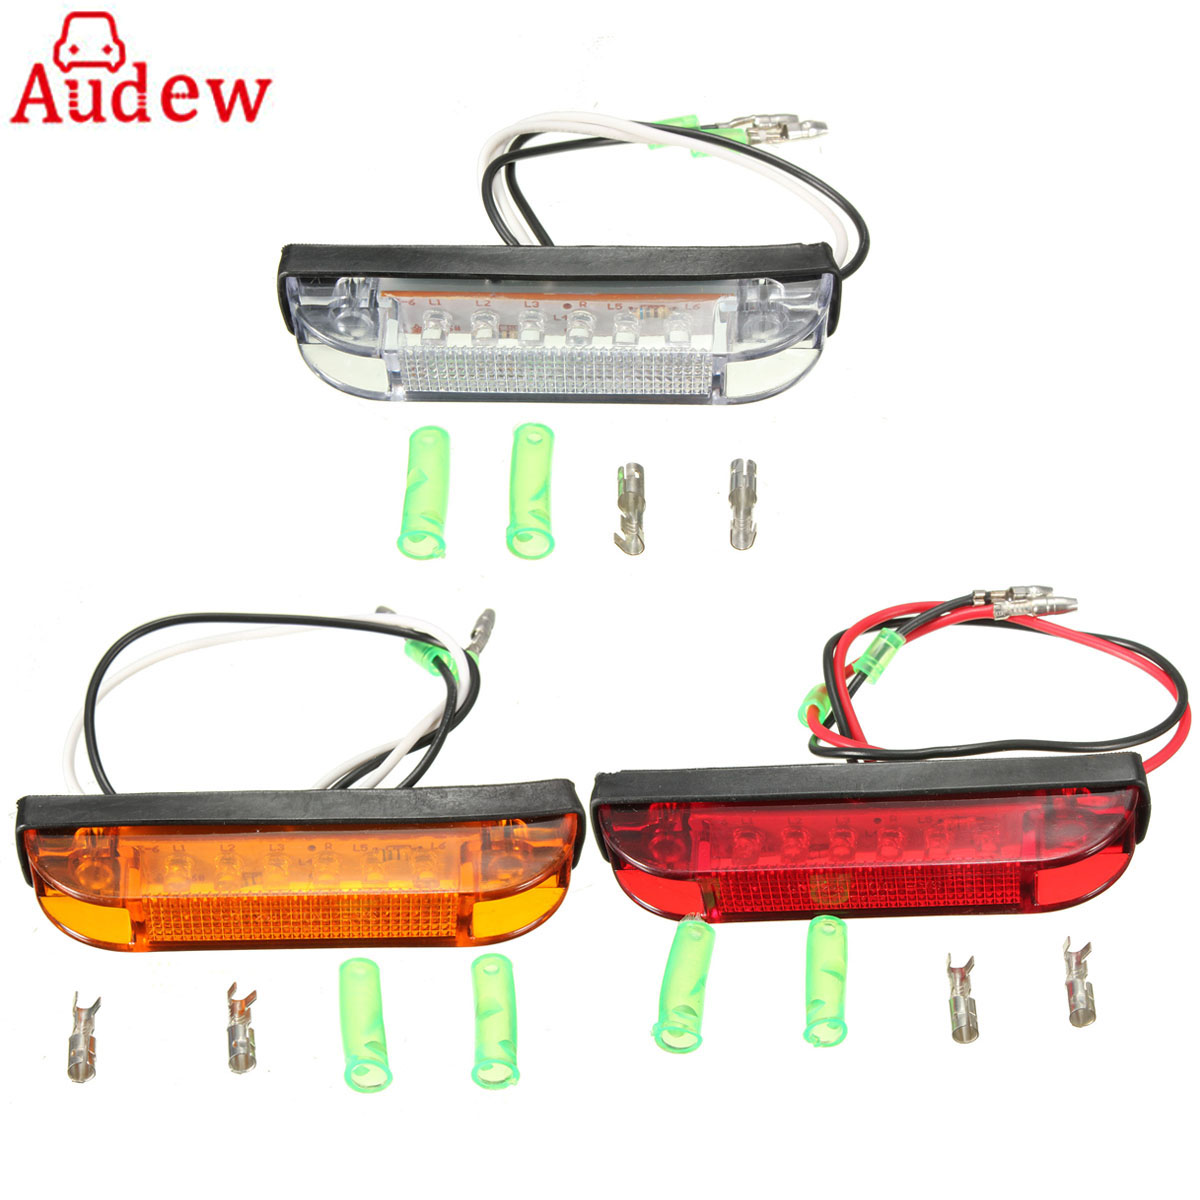 Car Truck 6 LED Utility LED Side Marker Clearance Light Lamp White Yellow Red Truck Trailer Lorry Stop Rear Lamp Side Light cyan soil bay 10pcs 3led amber waterproof side marker lights clearance lamp trailer truck bus car 3 led 12v 24v